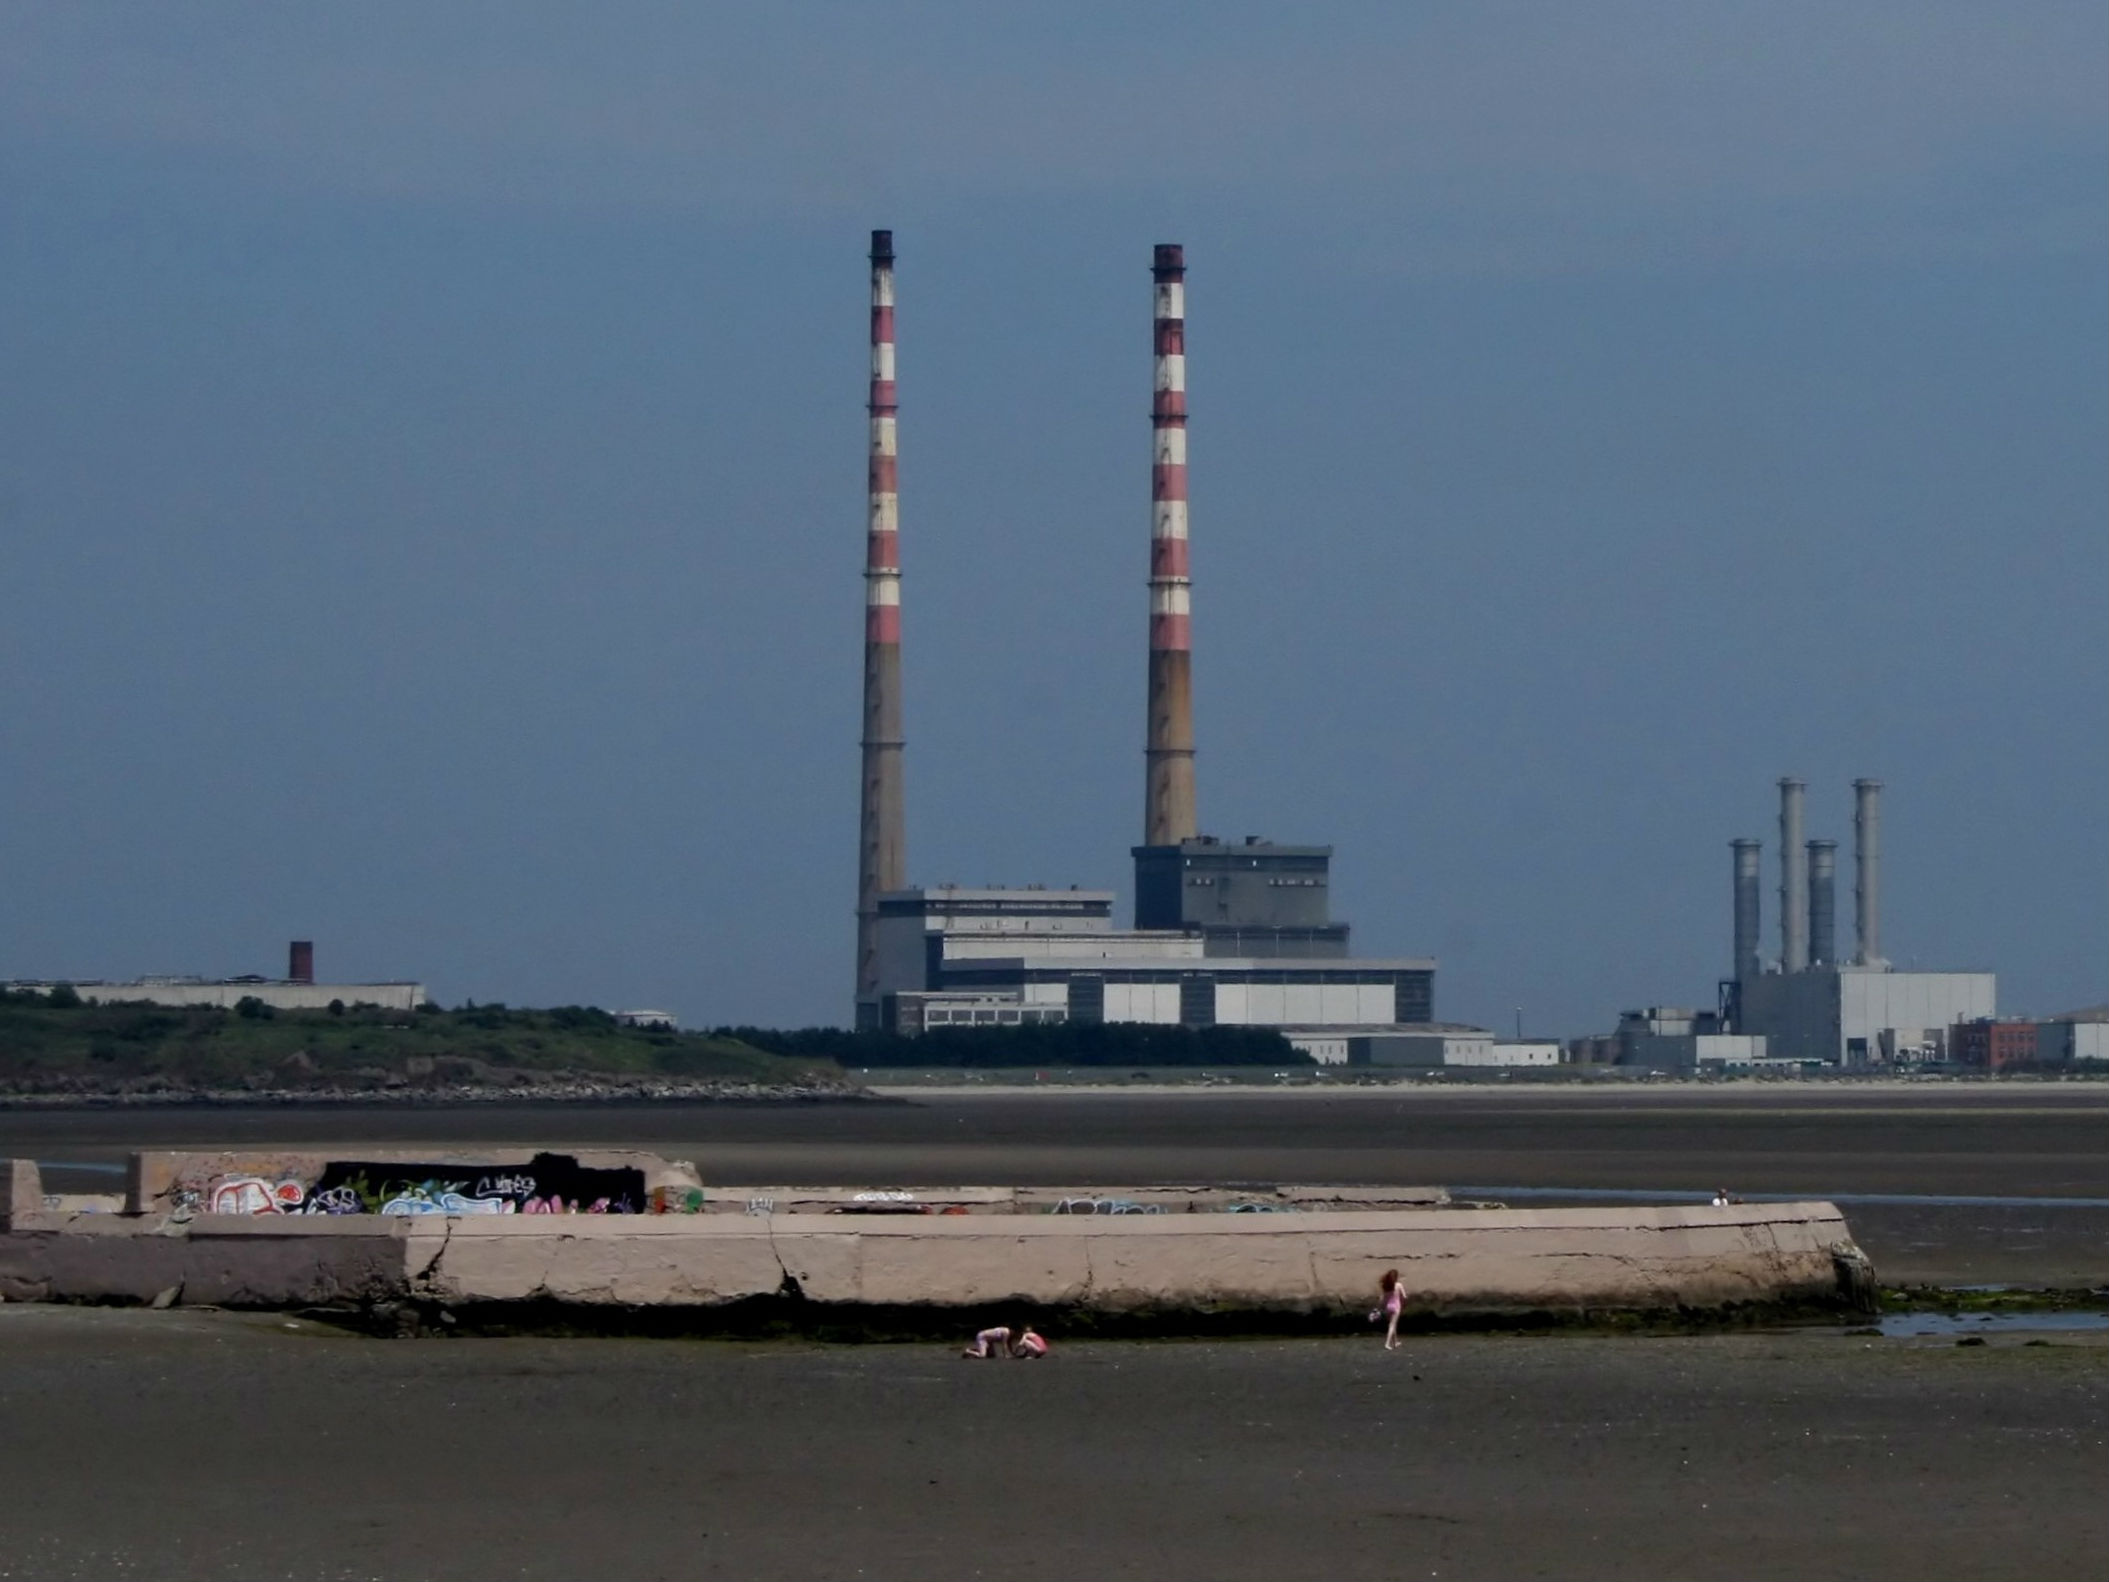 A Studio May Not Be Built In Poolbeg